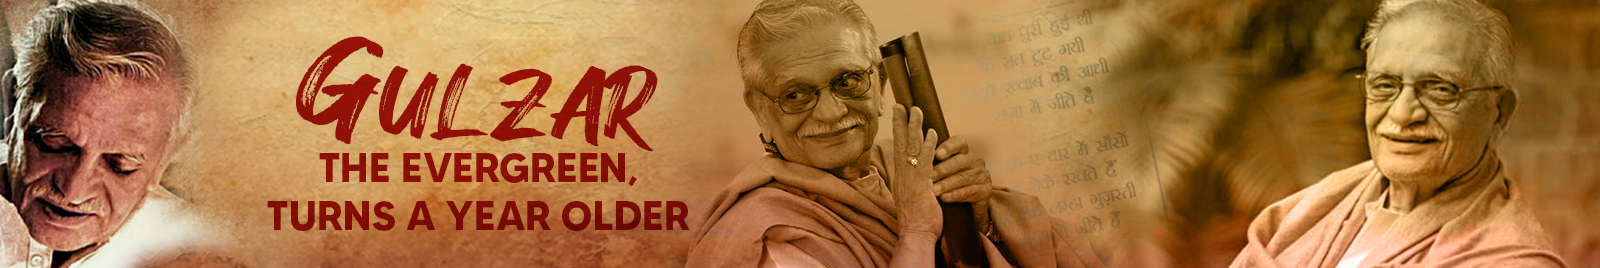 Gulzar, the evergreen, turns a year older